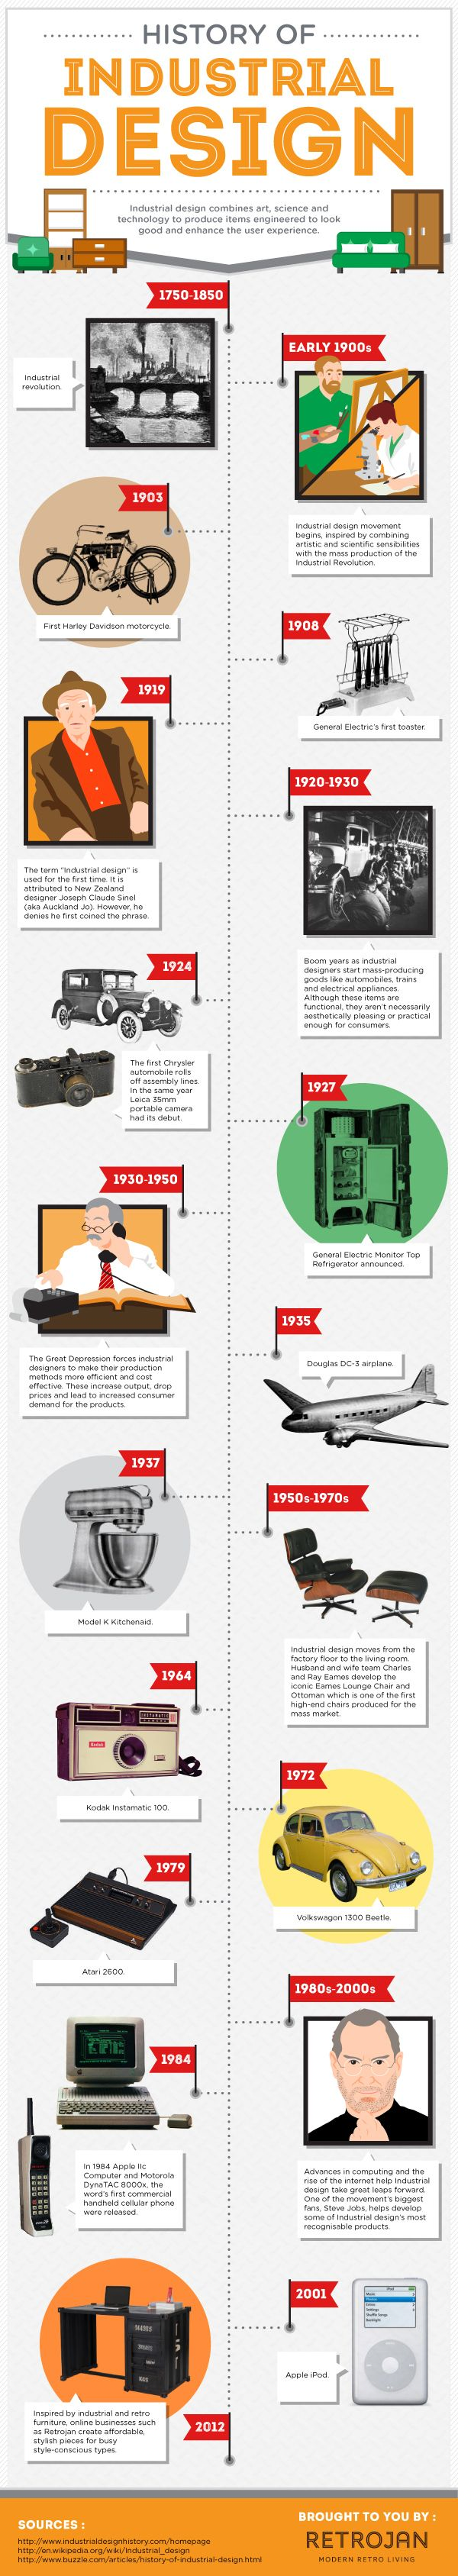 The History Of Industrial Design Infographic Timeline Design Industrial Design Timeline Architecture